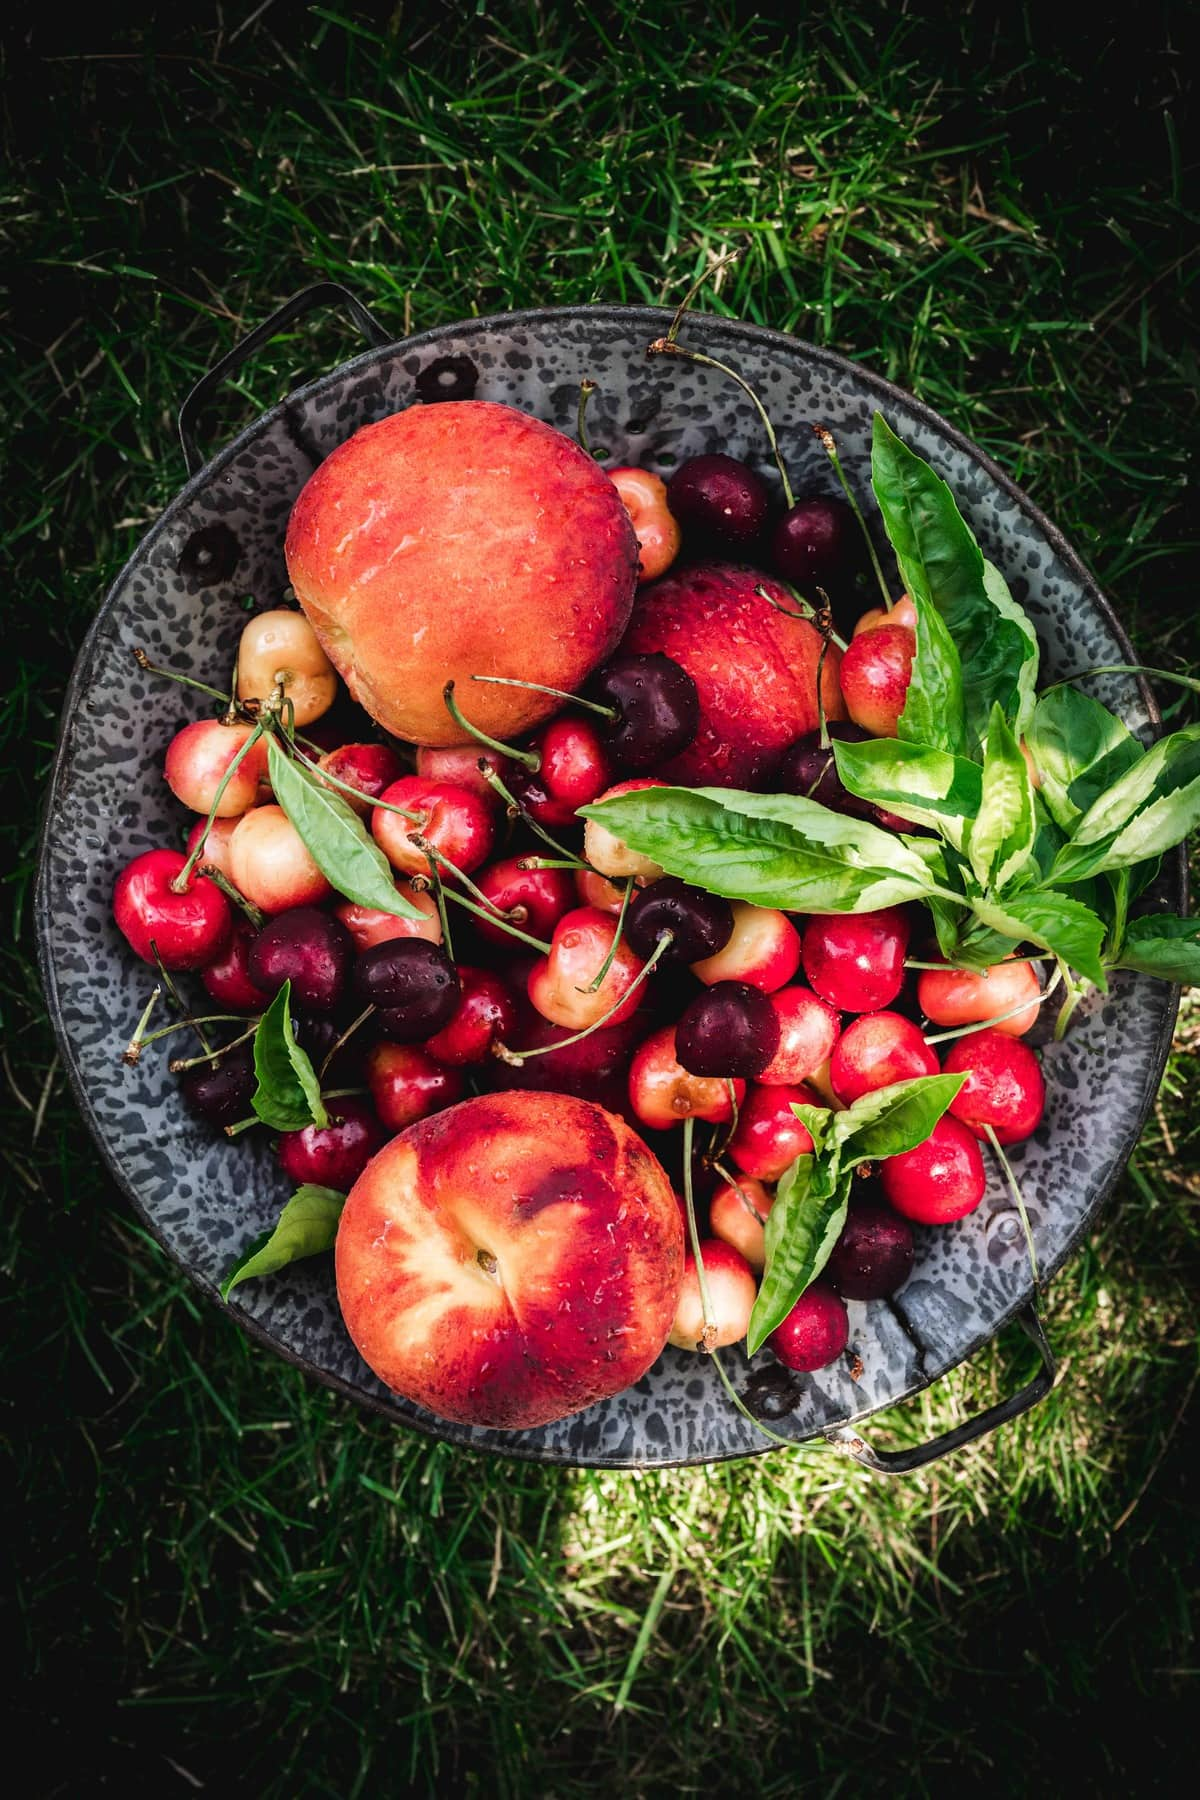 Overhead view of peaches, cherries and basil in bowl on grass